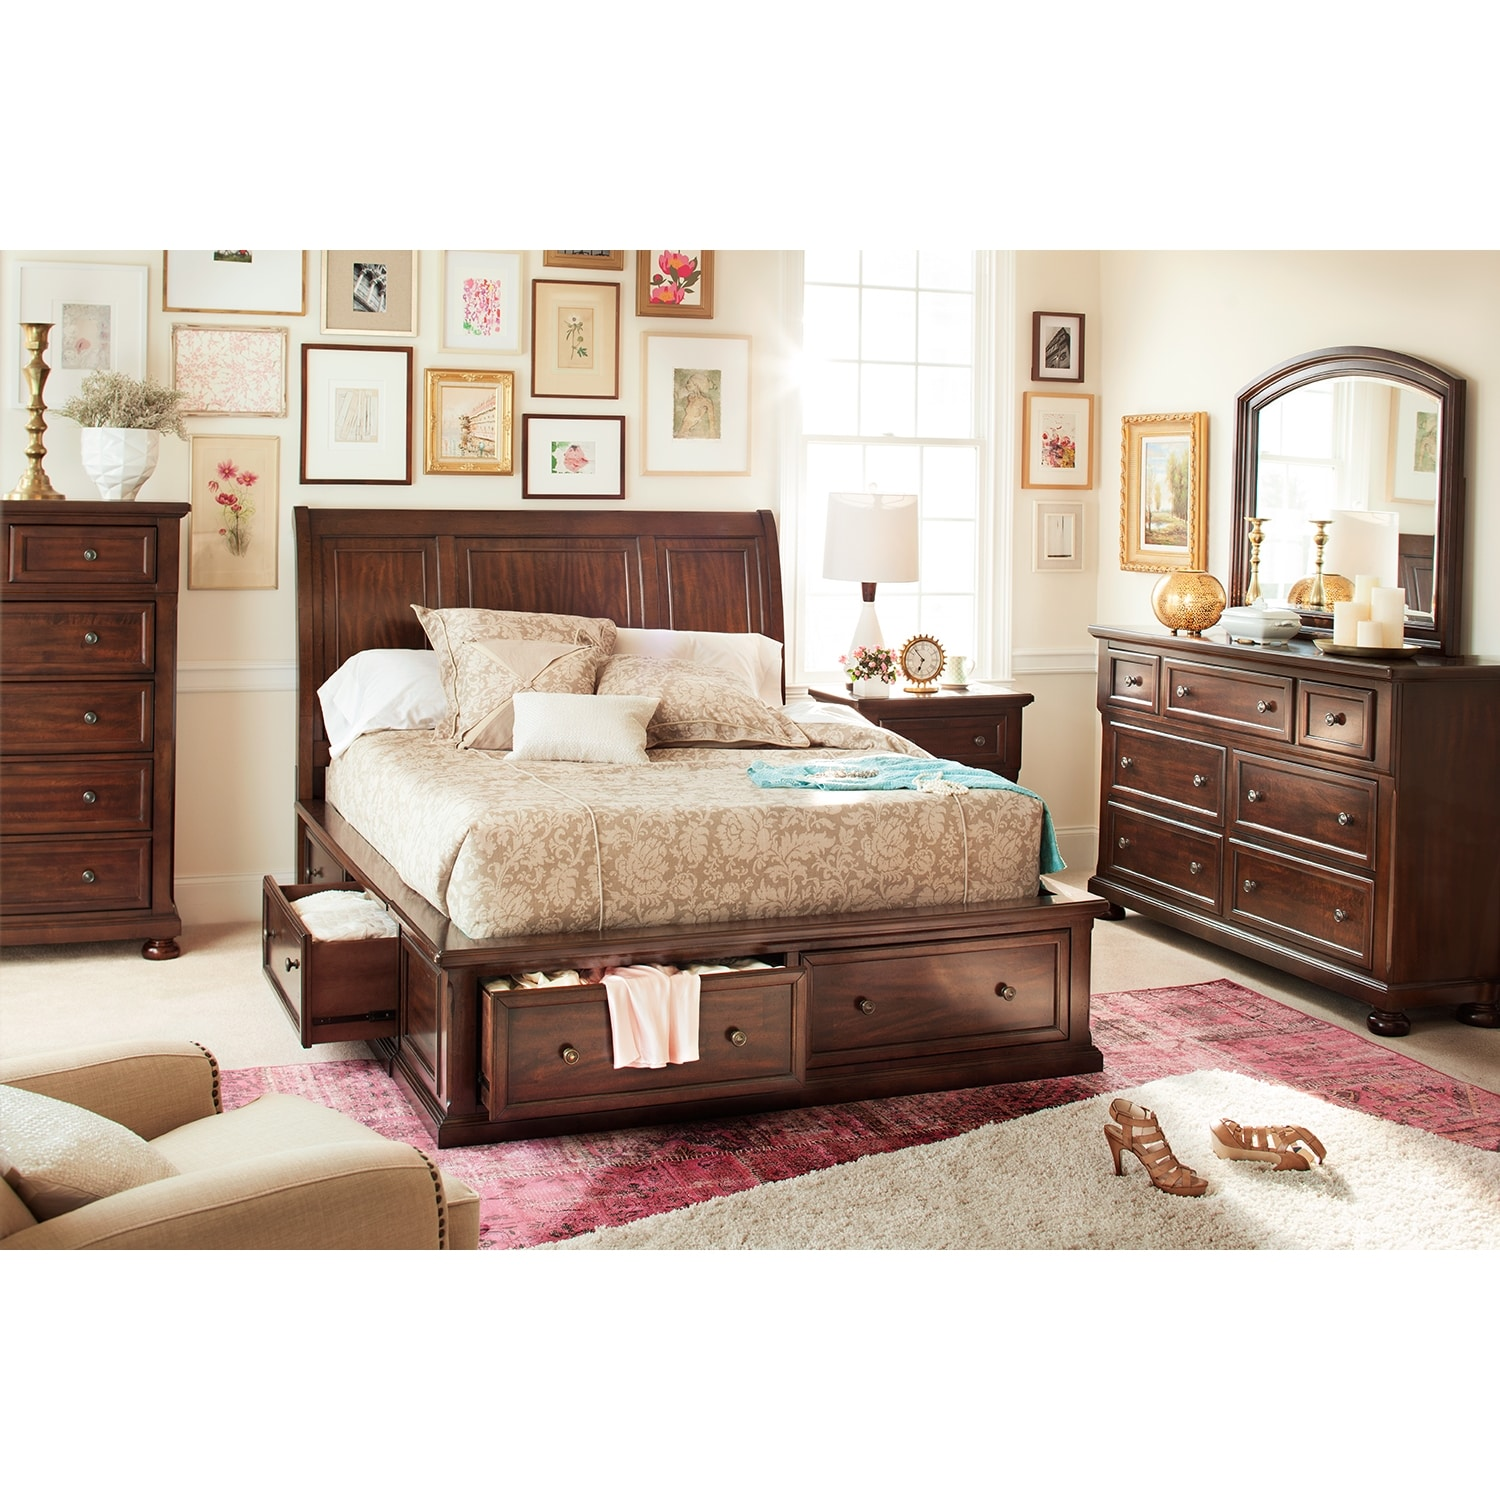 Hanover 7 piece king storage bedroom set cherry for American bedrooms